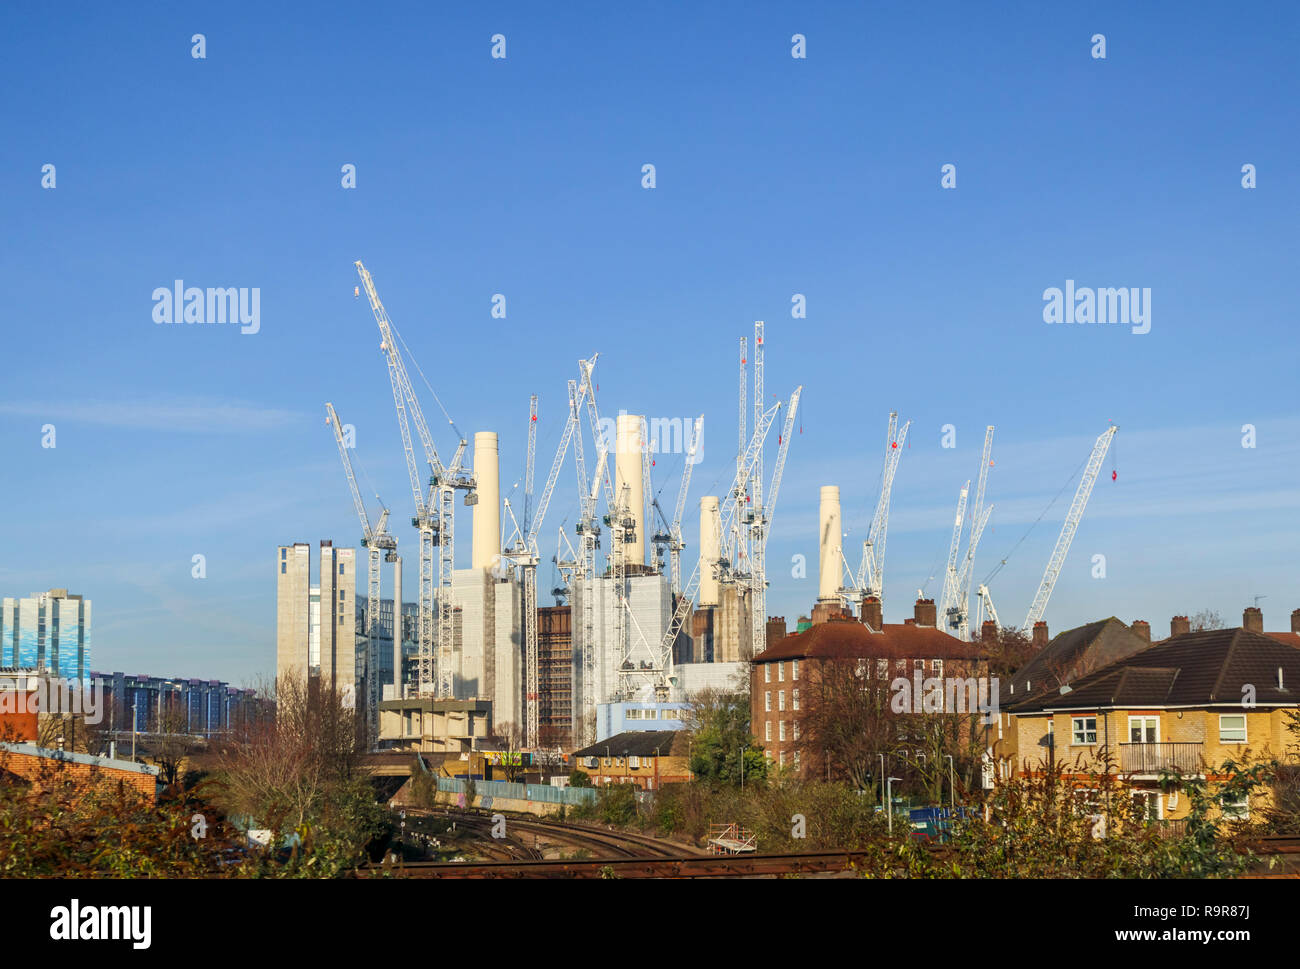 White tower cranes surround the iconic decommissioned Battersea Power Station being redeveloped for mixed uses and high class luxury apartments Stock Photo